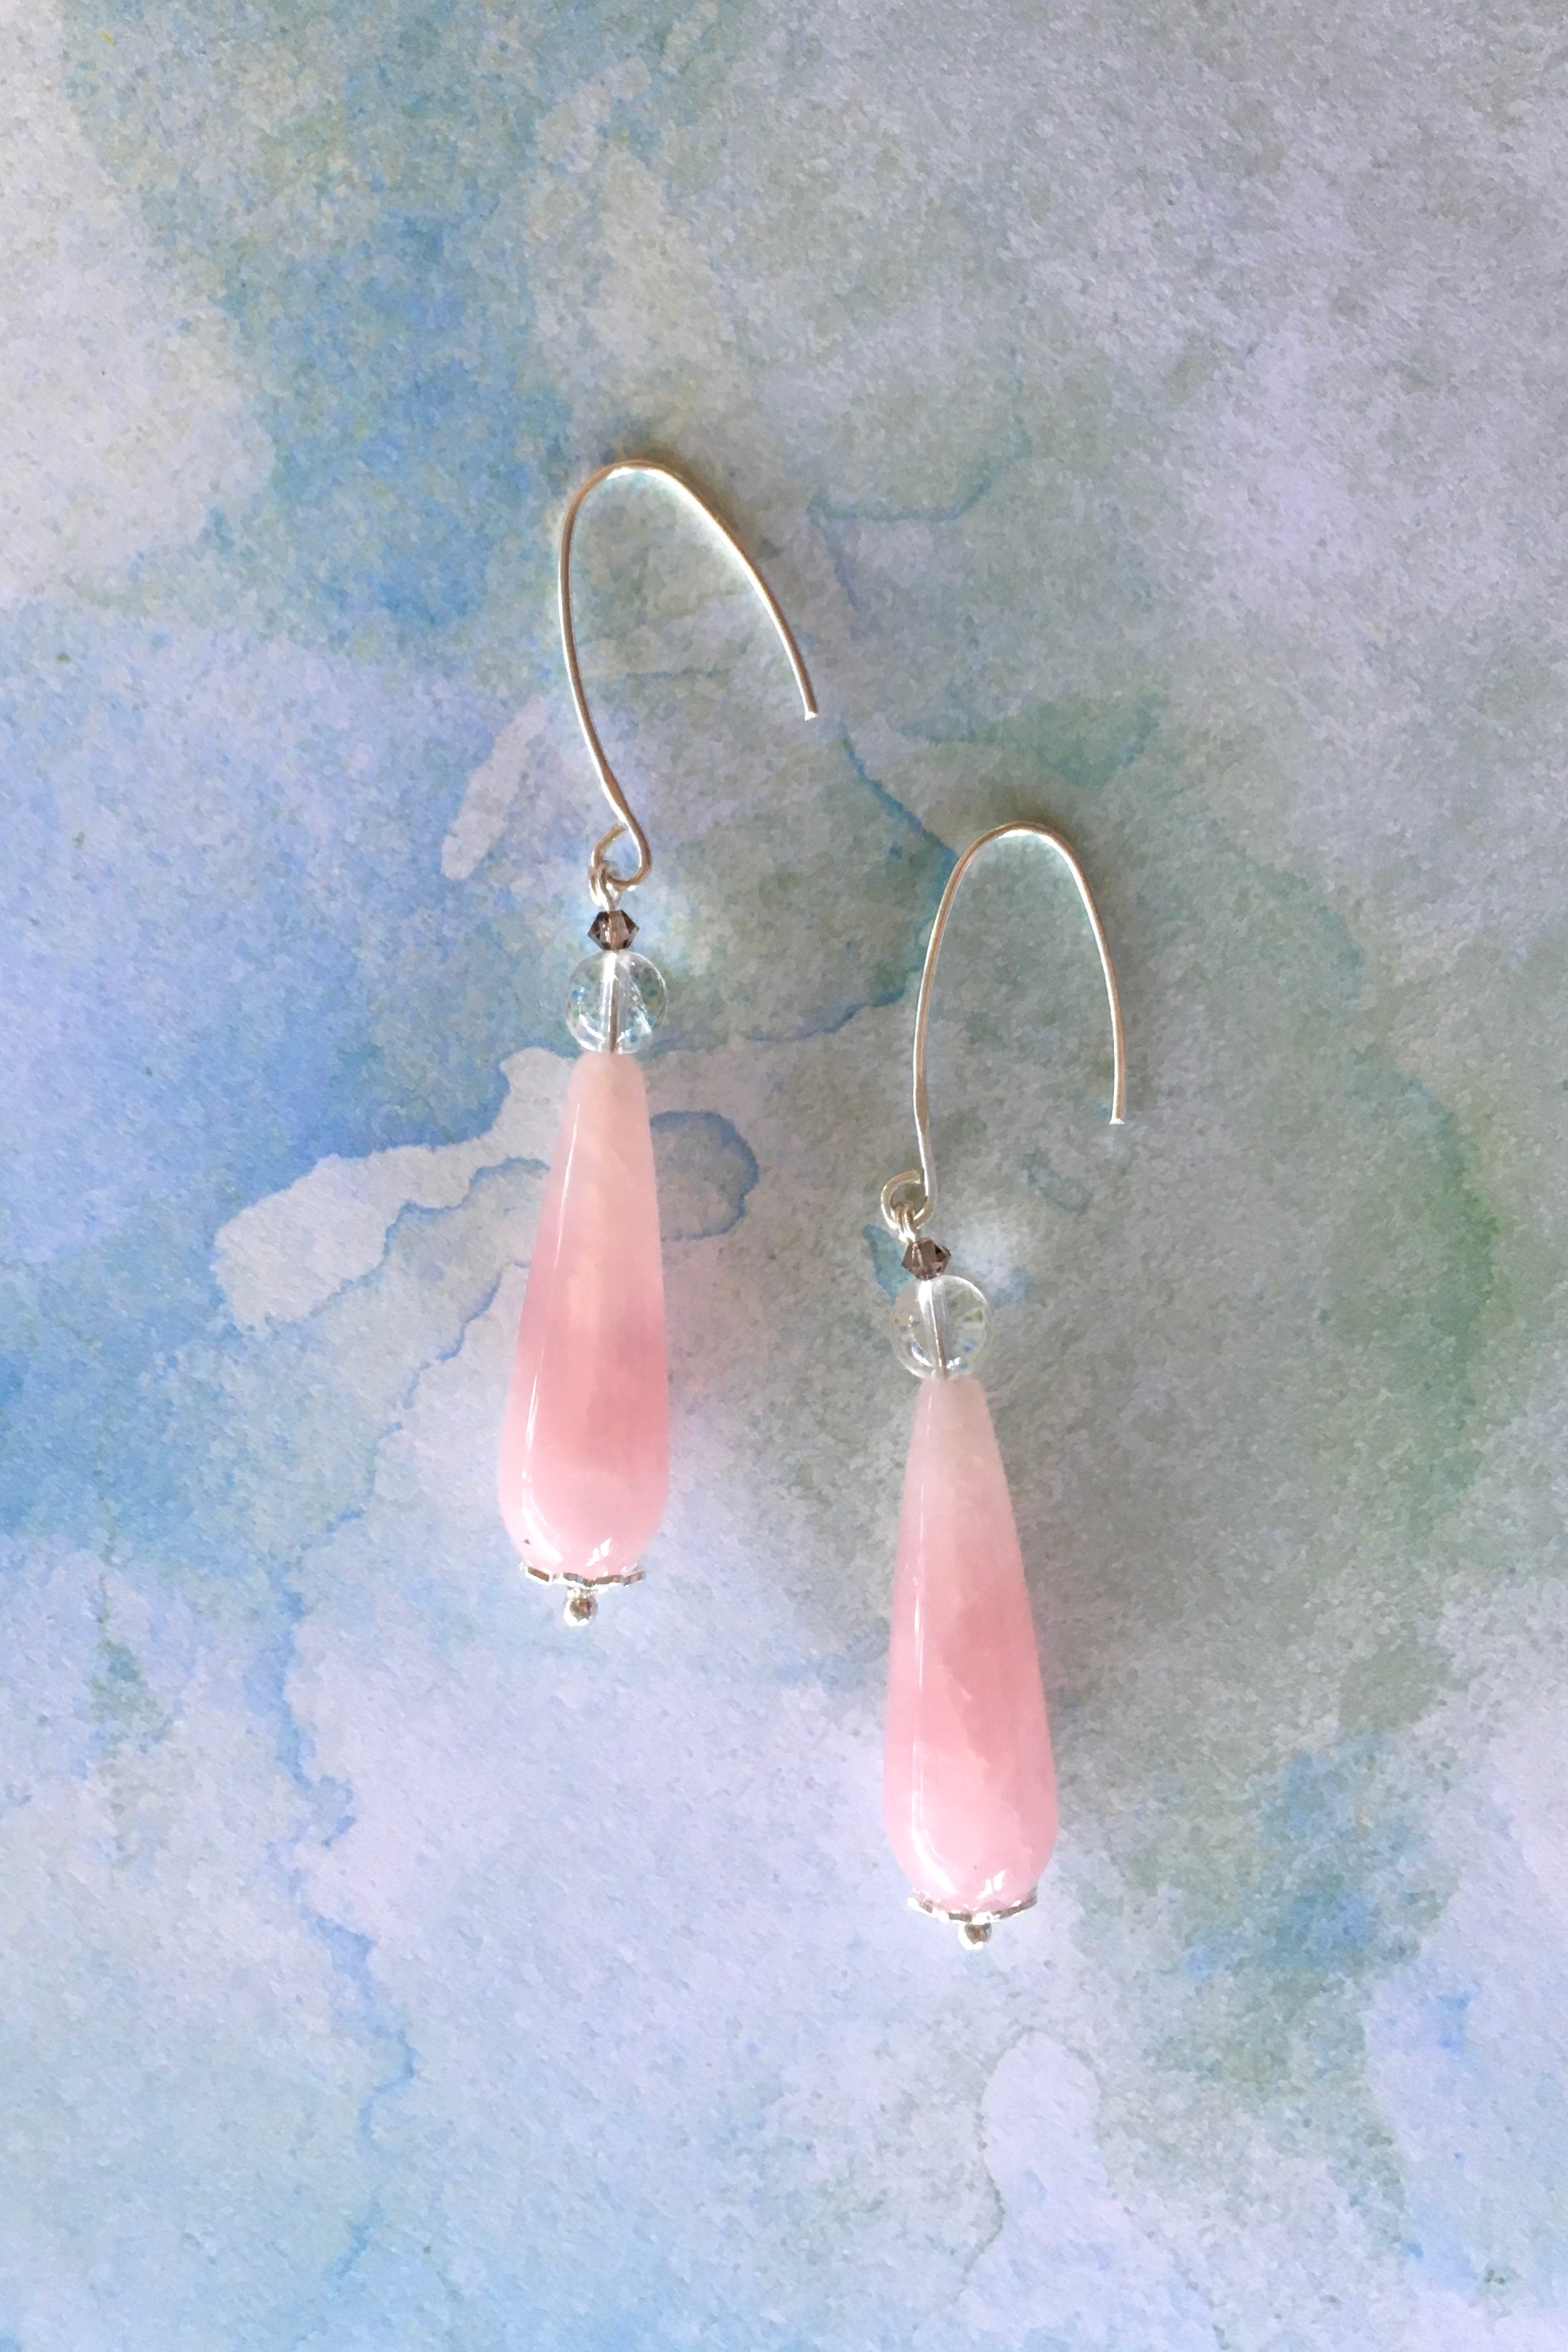 Women's jewellery. Rose quartz moonstone crystal drop earrings, drop style  bohemian and gypsy inspired sea blue stones in a teardrop shape. 925 silver hook. Great for everyday, night out, event, occasion. Beautiful gift and accessory. Lightweight. Designed in Brisbane Australia.